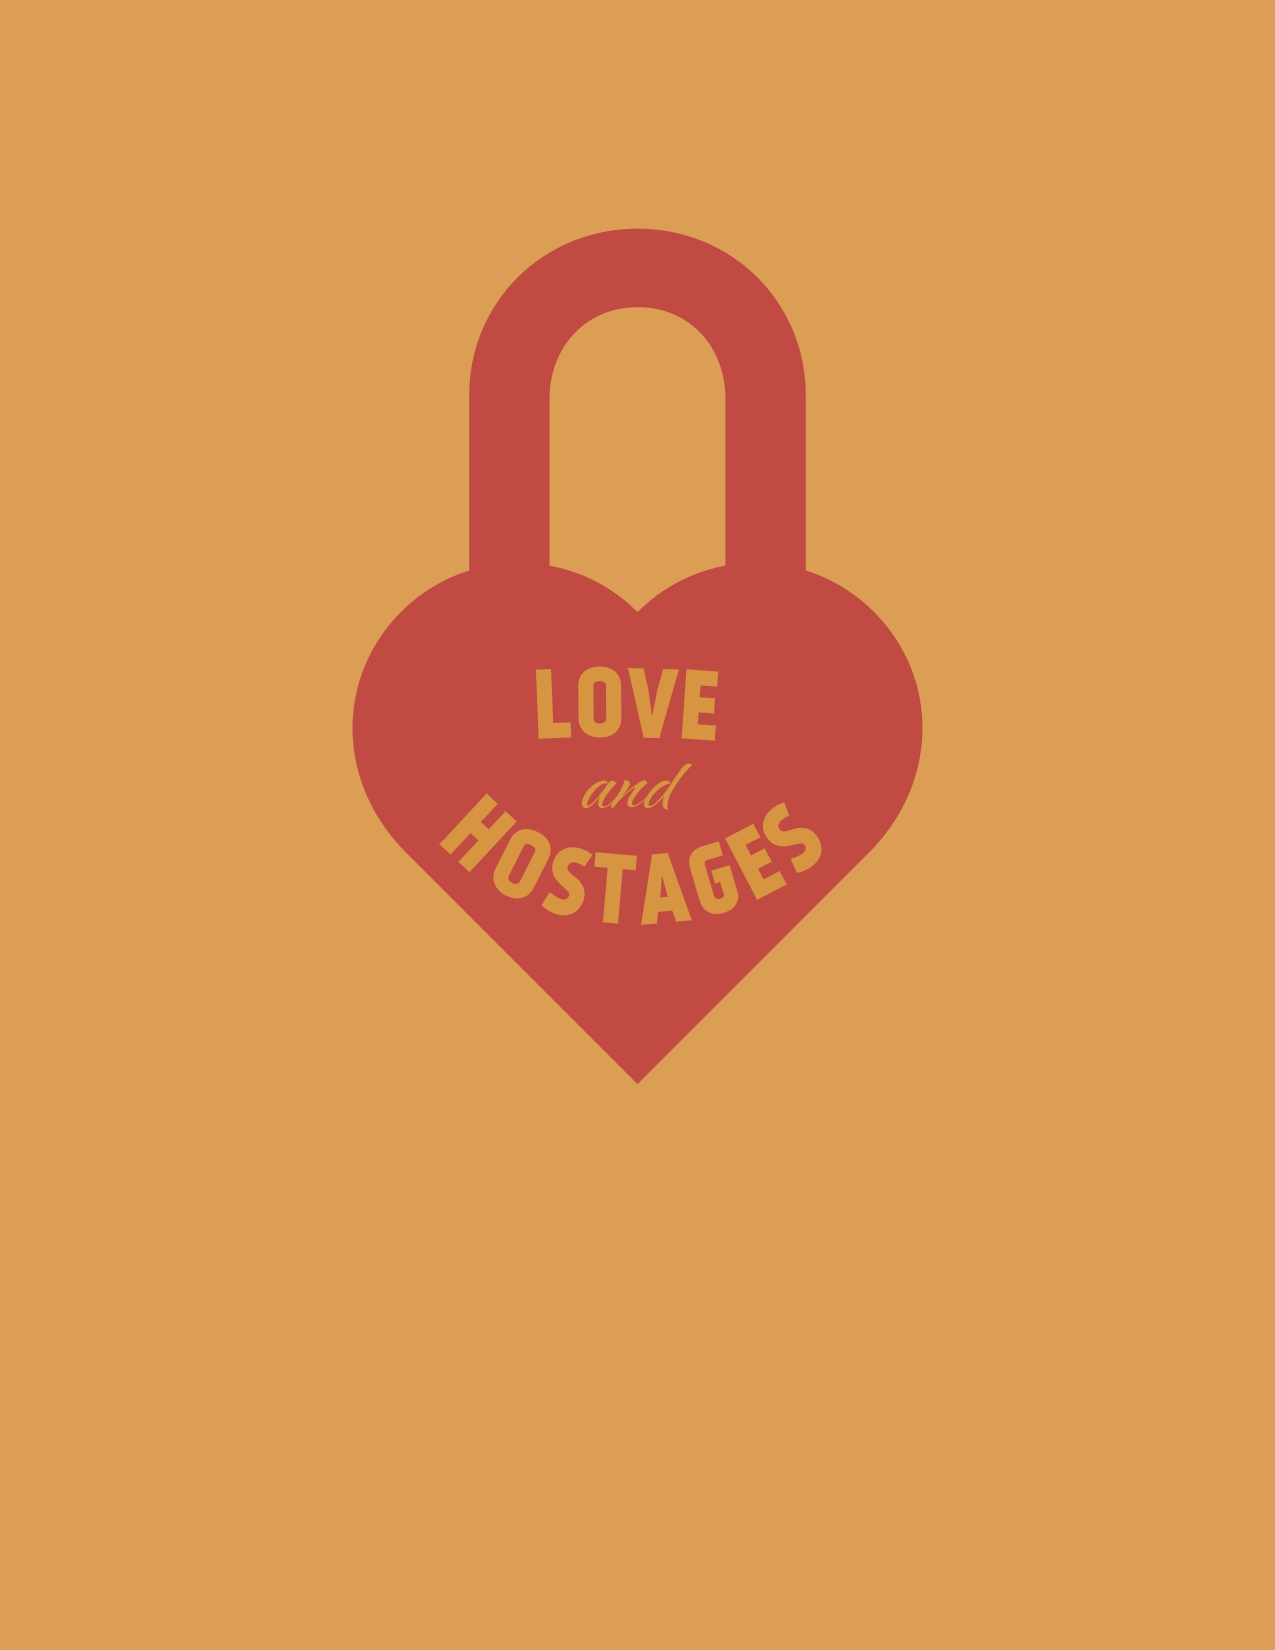 Love and hostages padlock.jpg